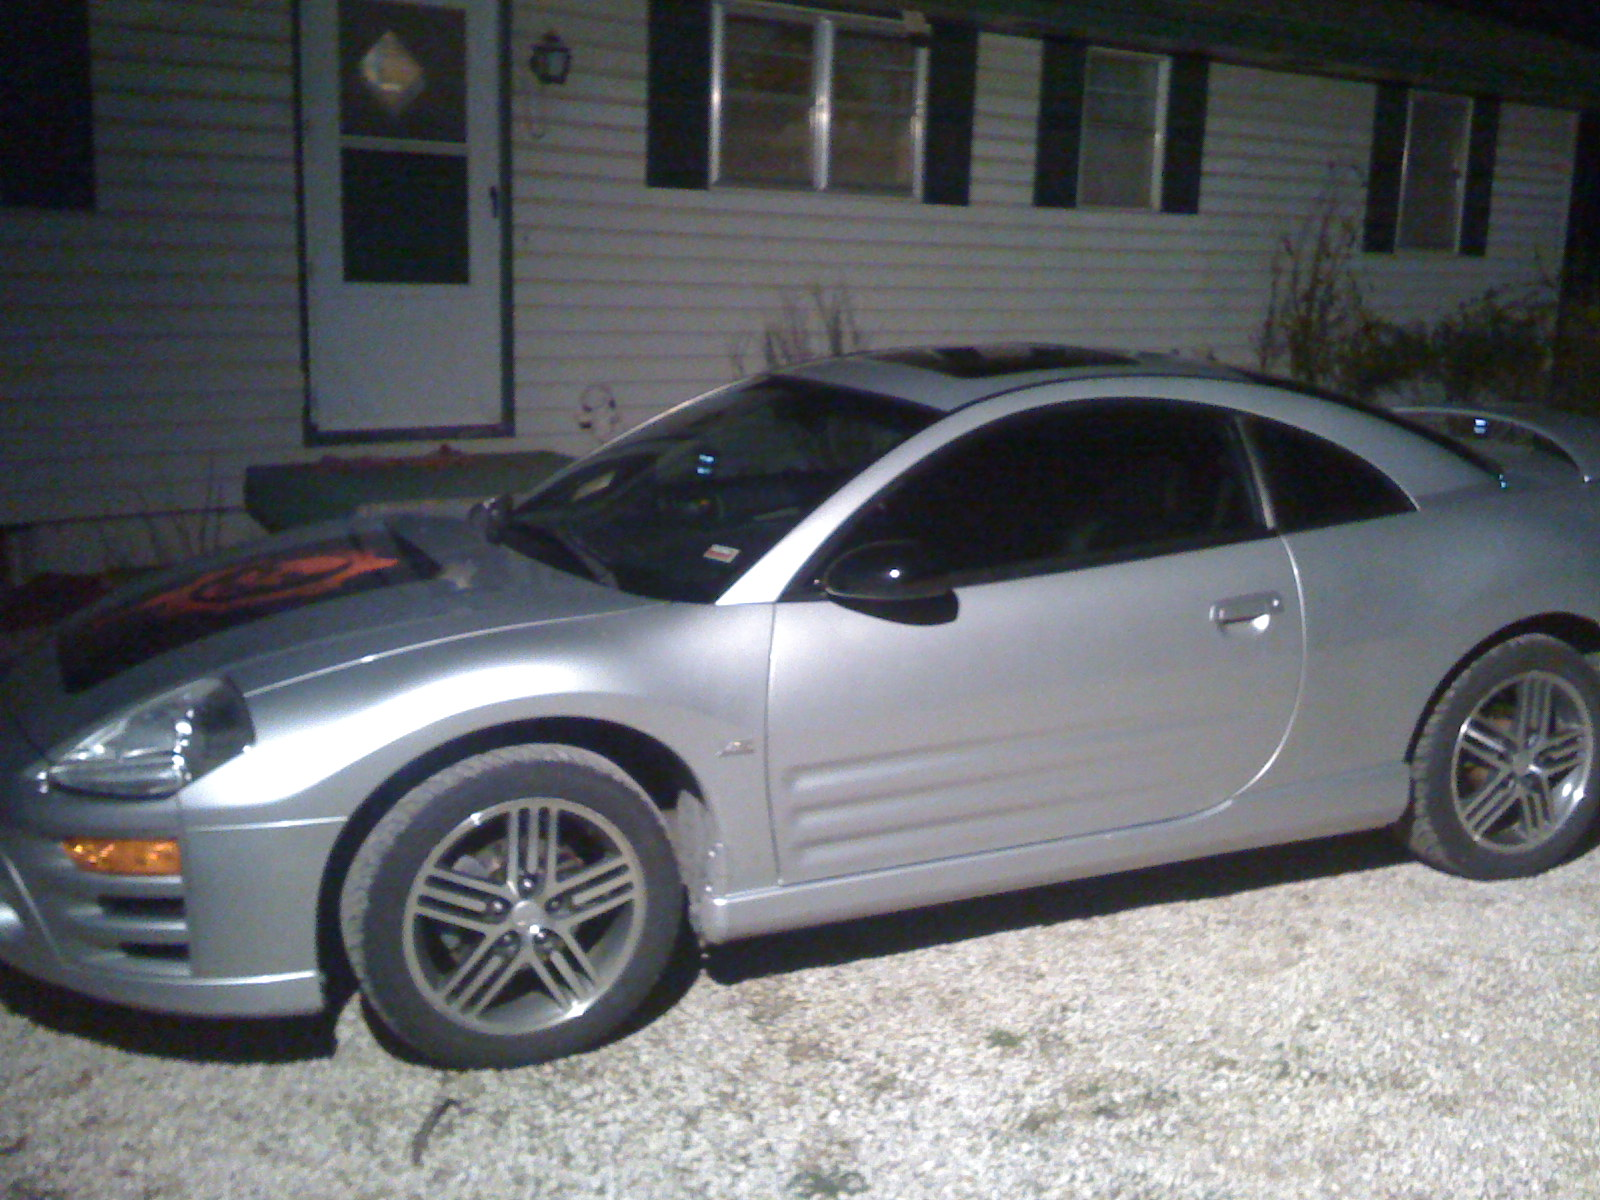 2003 Mitsubishi Eclipse GTS 1/4 mile trap sds 0-60 - DragTimes.com